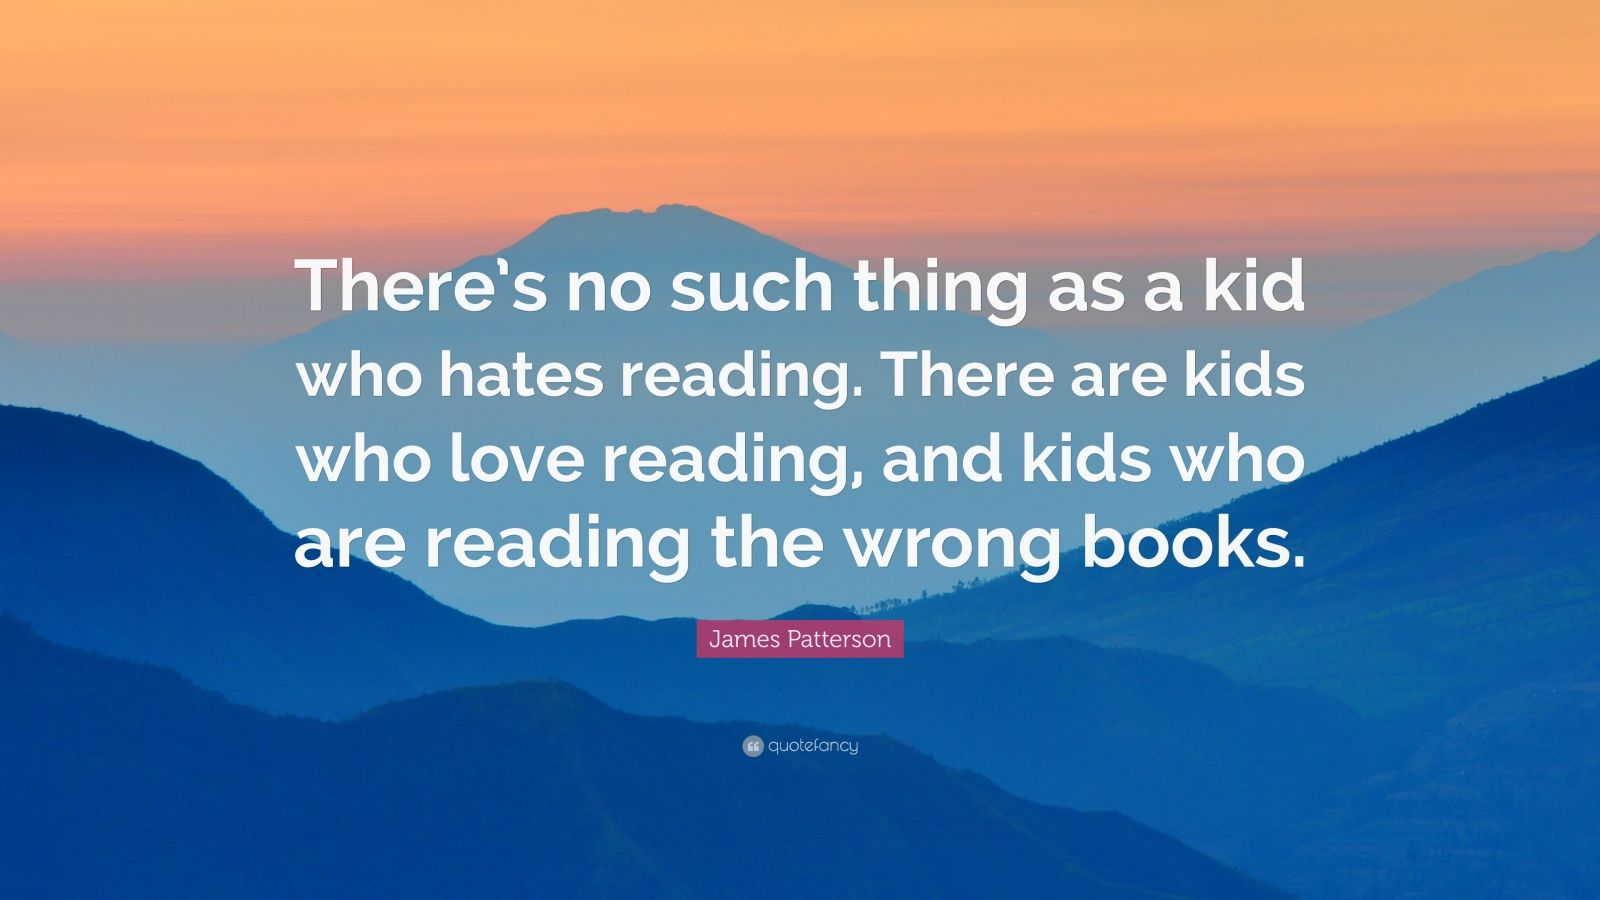 Reading Quotes For Kids James Patterson Quotes 100 Wallpapers  Quotefancy